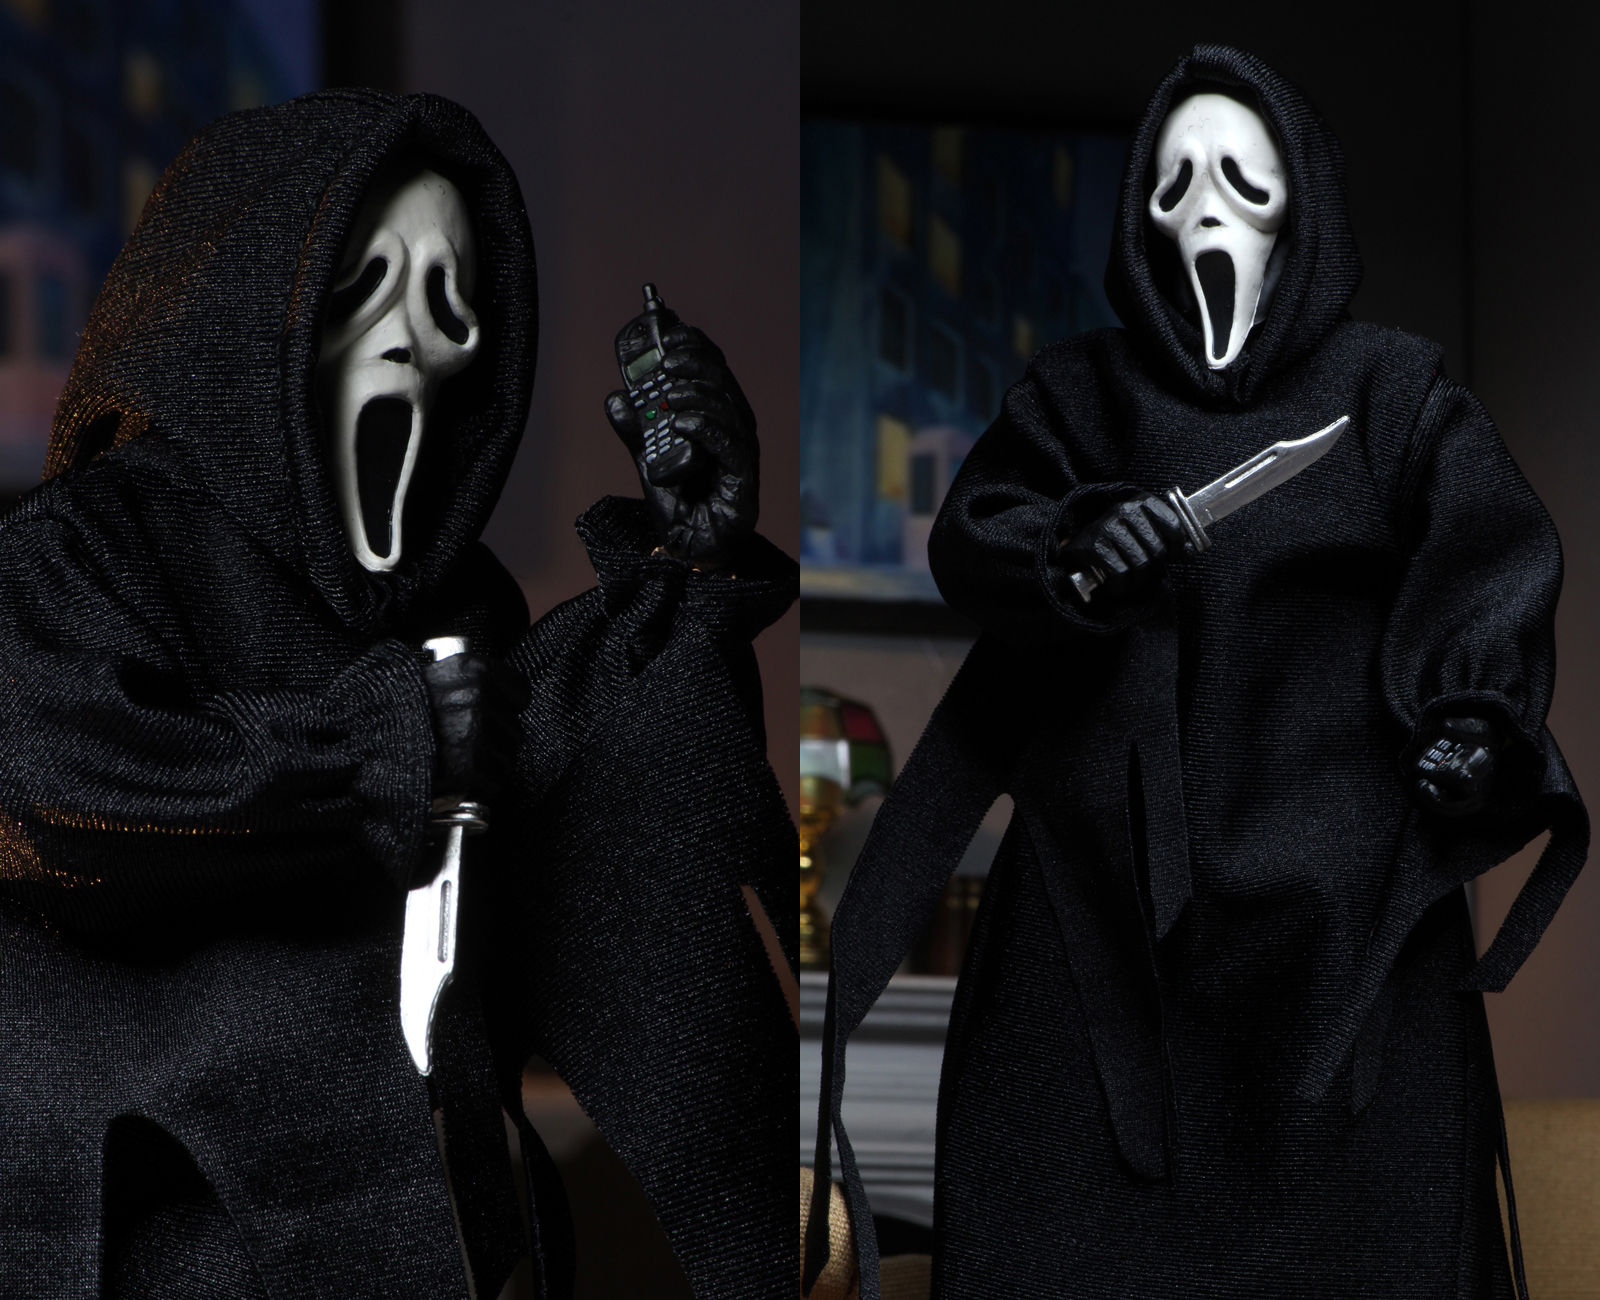 Broke Horror Fan On Twitter I Love That Neca Toys S Ghostface Figure Comes With Phone Voice Changer Accessories Https T Co Pccifw8tik Coming In July Https T Co 684c2cspfg